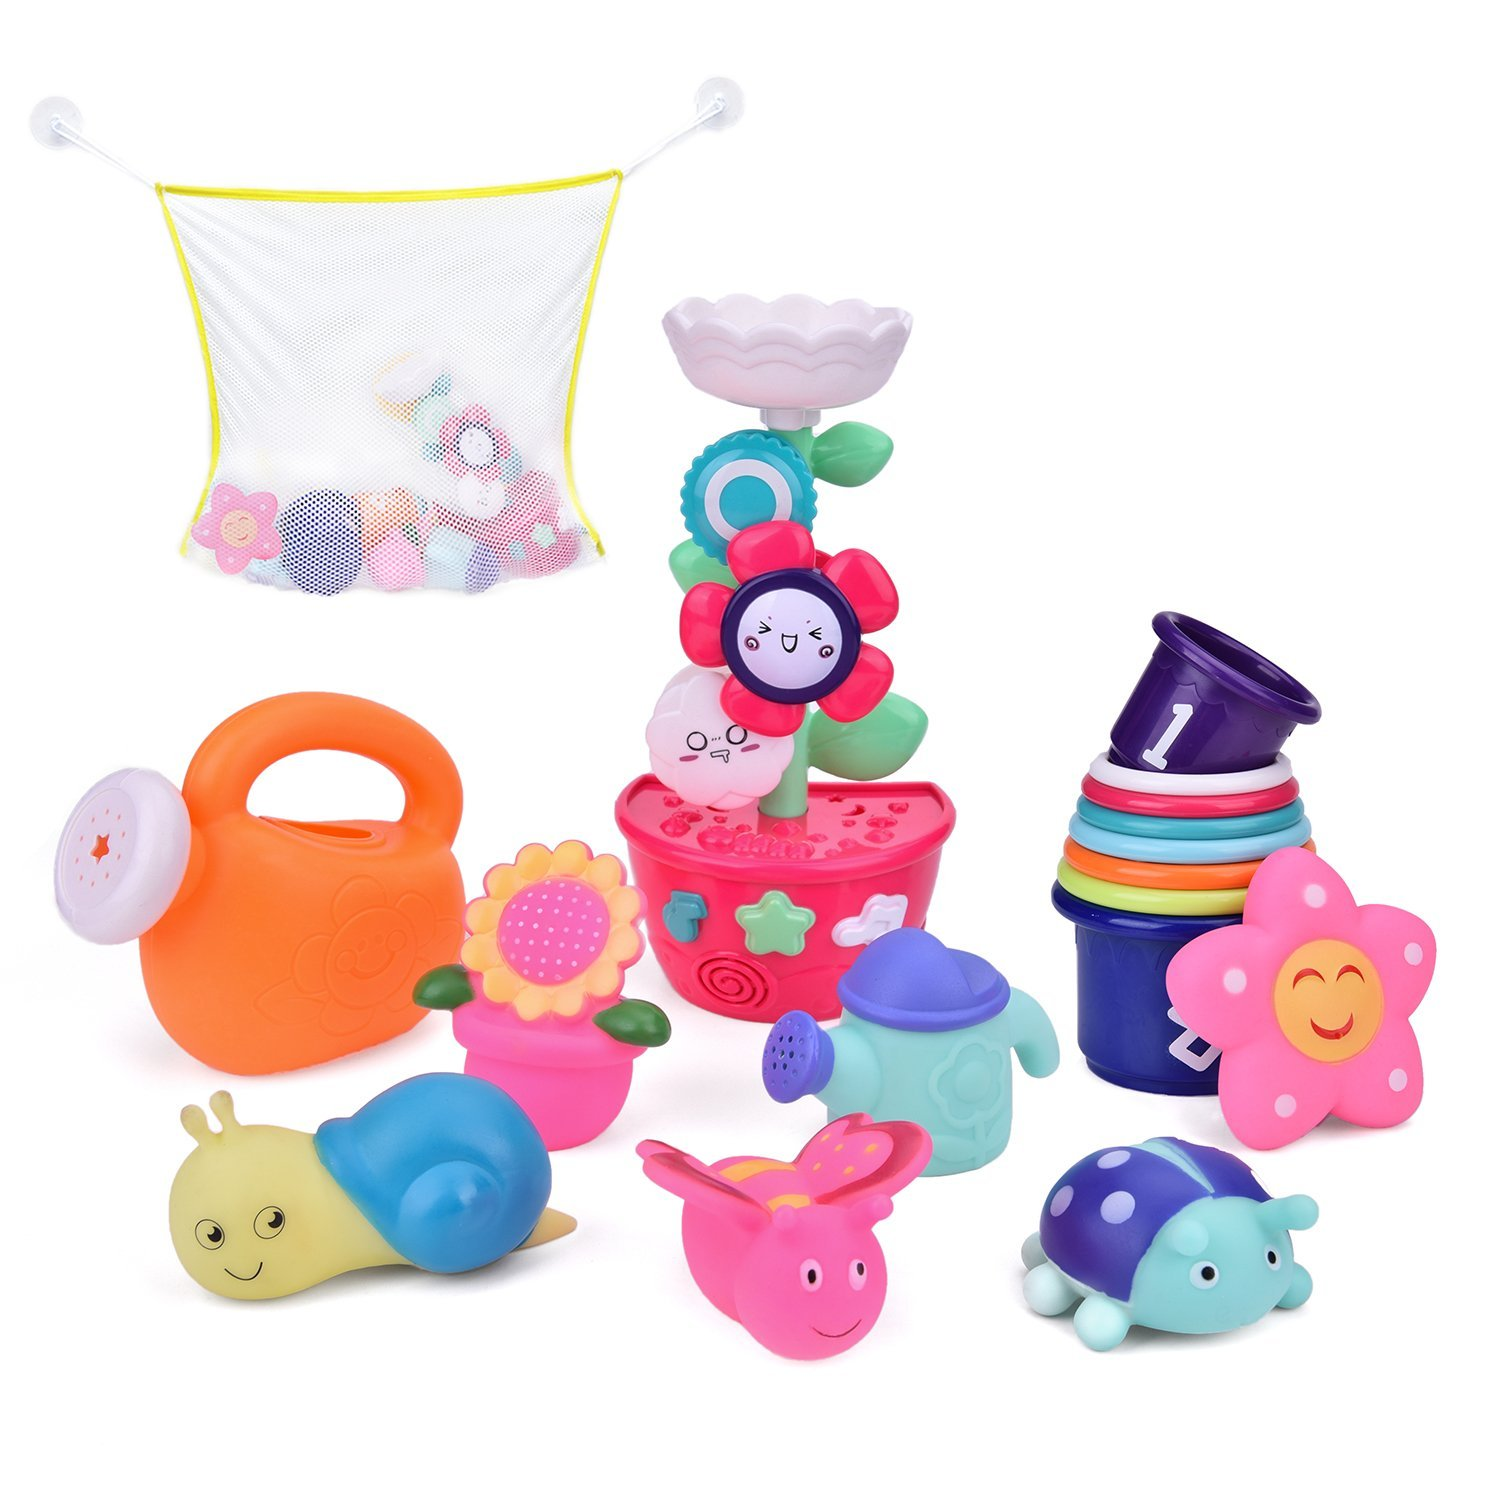 17 PCs Bath Toys for Toddlers, Flower Waterfall Water Station with Garden Squirter Toys, Stacking Cups and Watering Can, Bath Toy Organizer Included